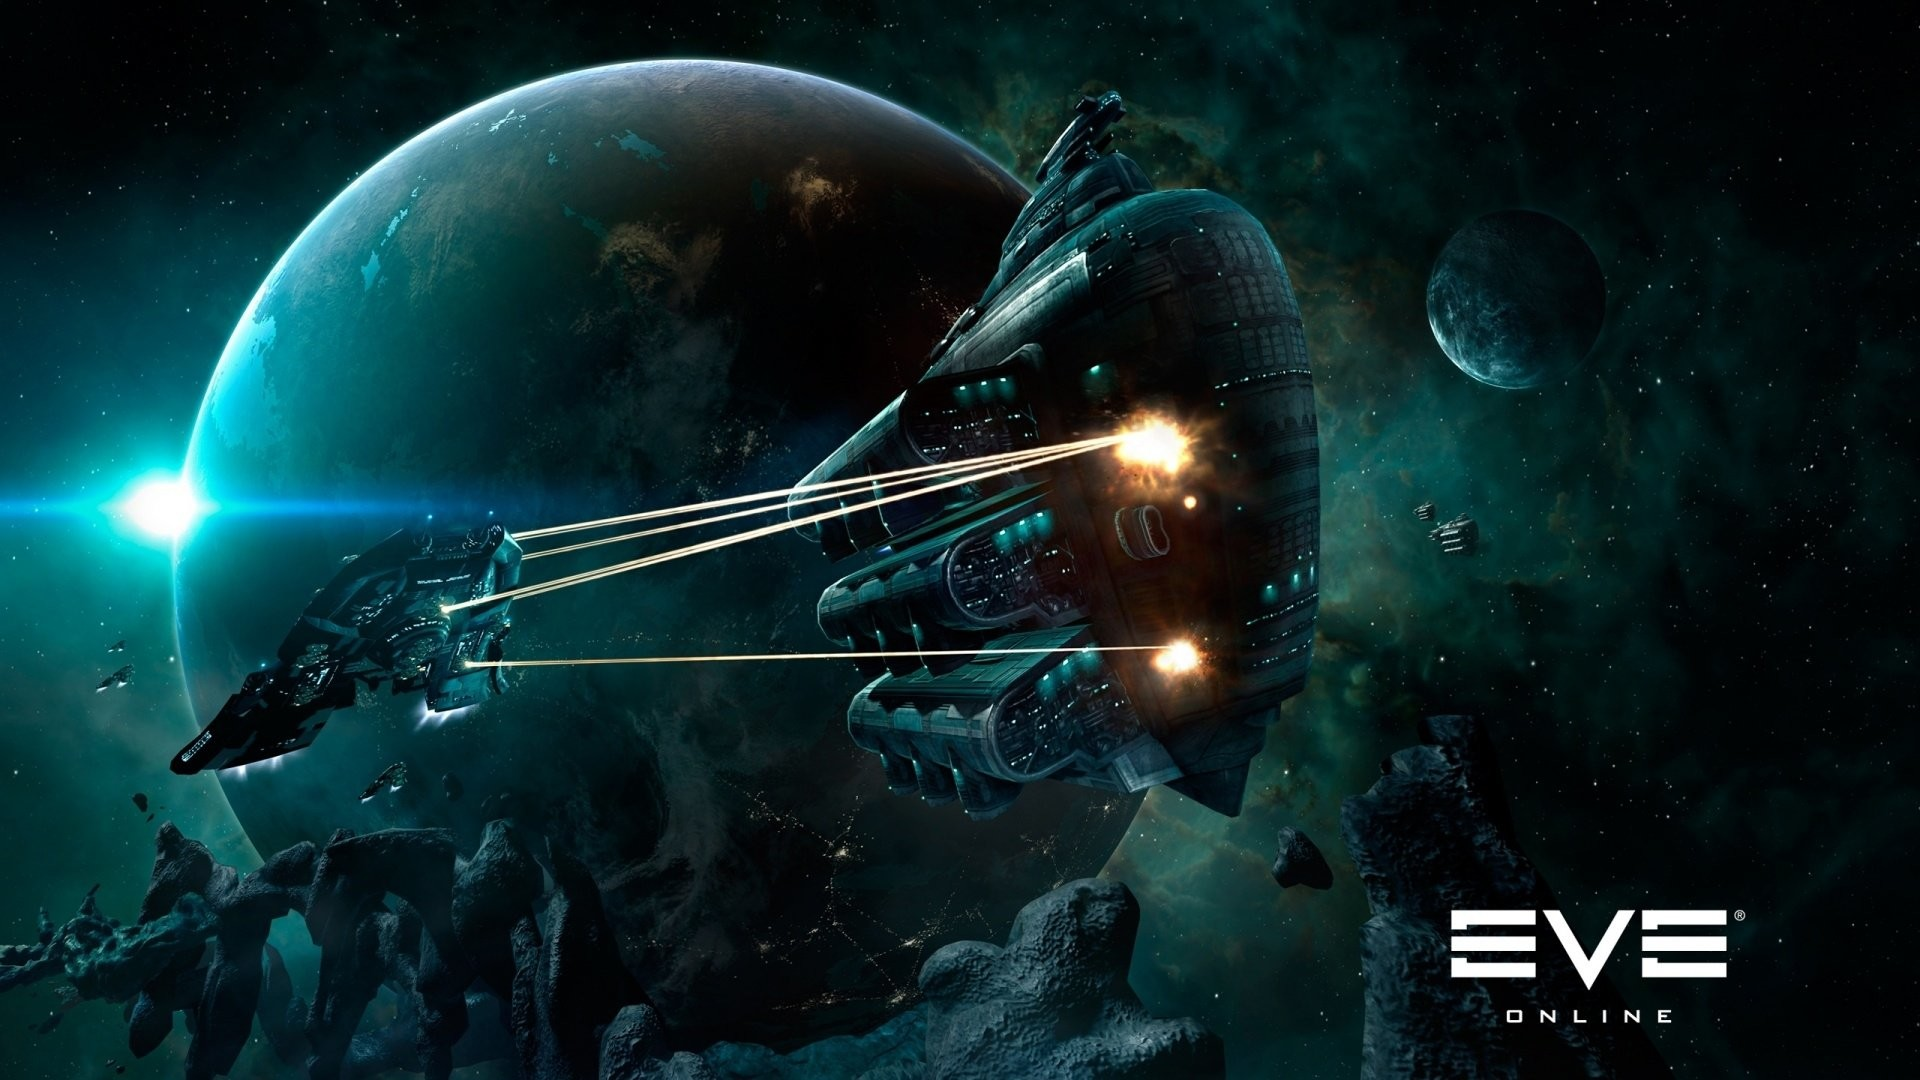 HD Wallpaper | Background ID:264416. Video Game EVE Online